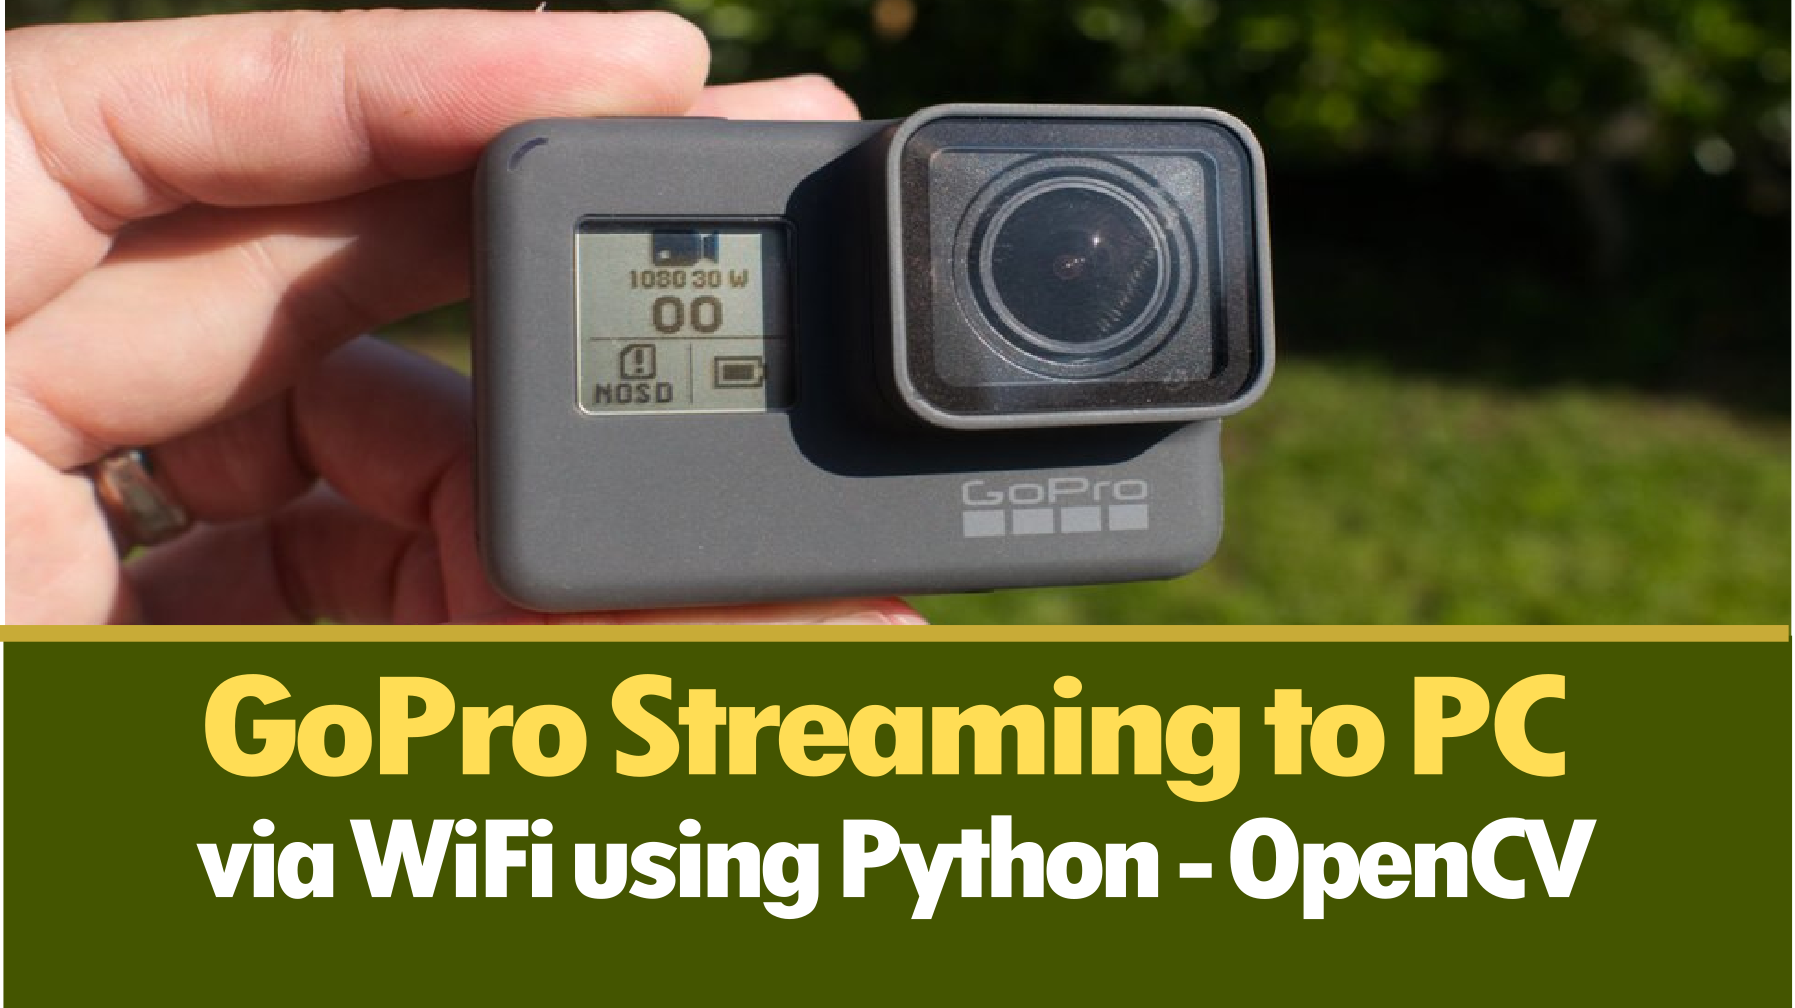 GoPro video streaming to PC using OpenCV Python - Ardian